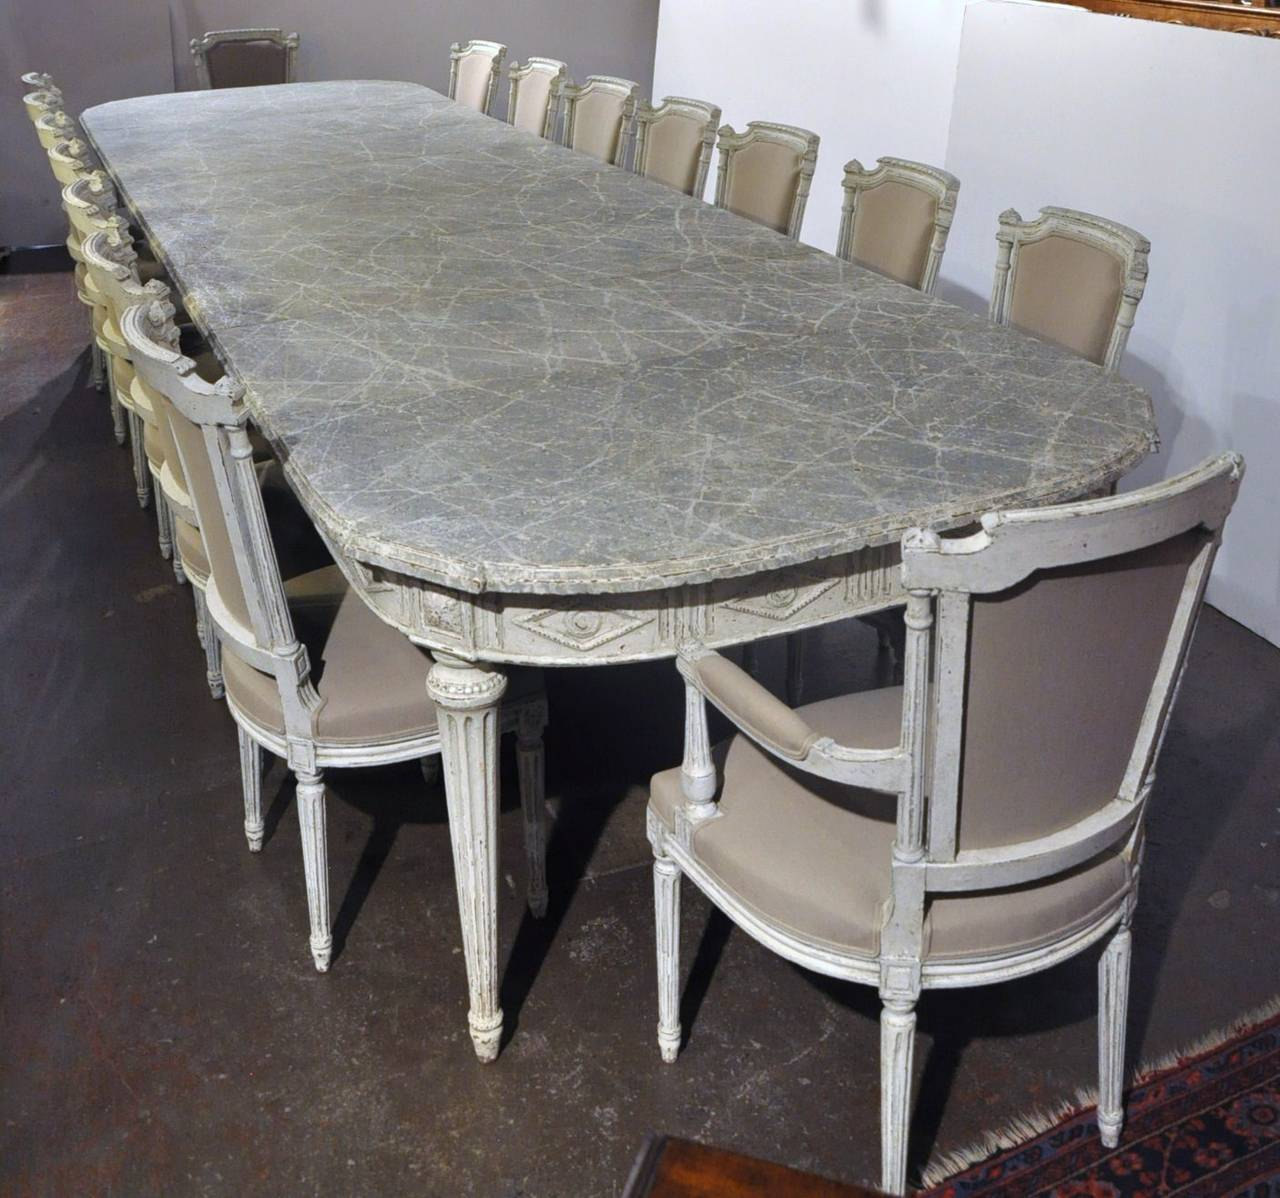 Antique Dining Room Table: Large Antique 19th Century French Louis XVI Painted Dining